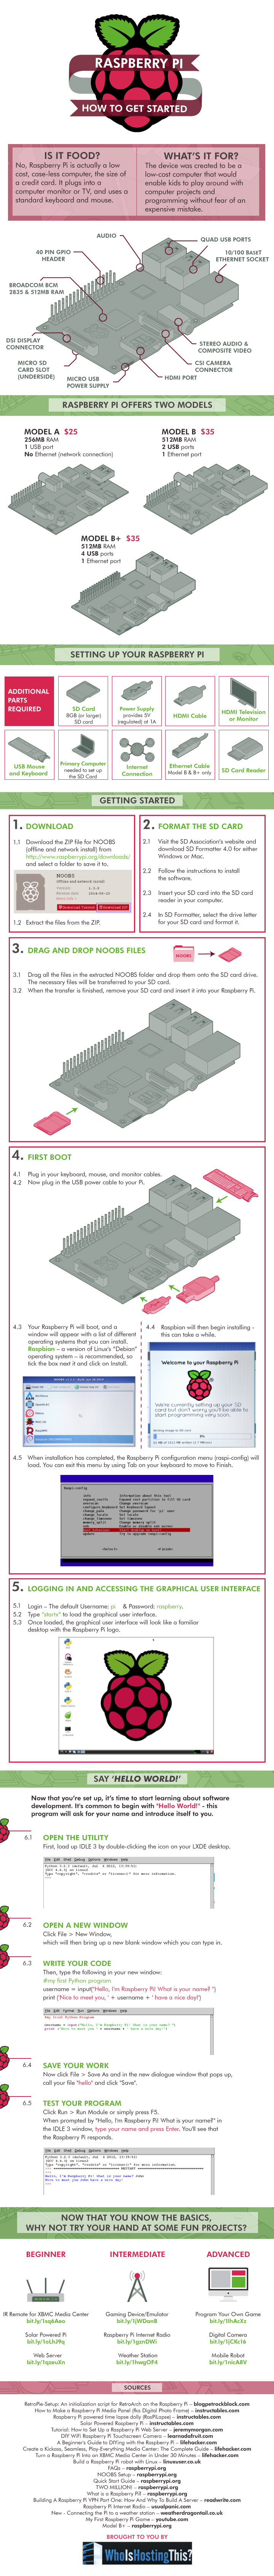 Infographic - Setting Up The Pi